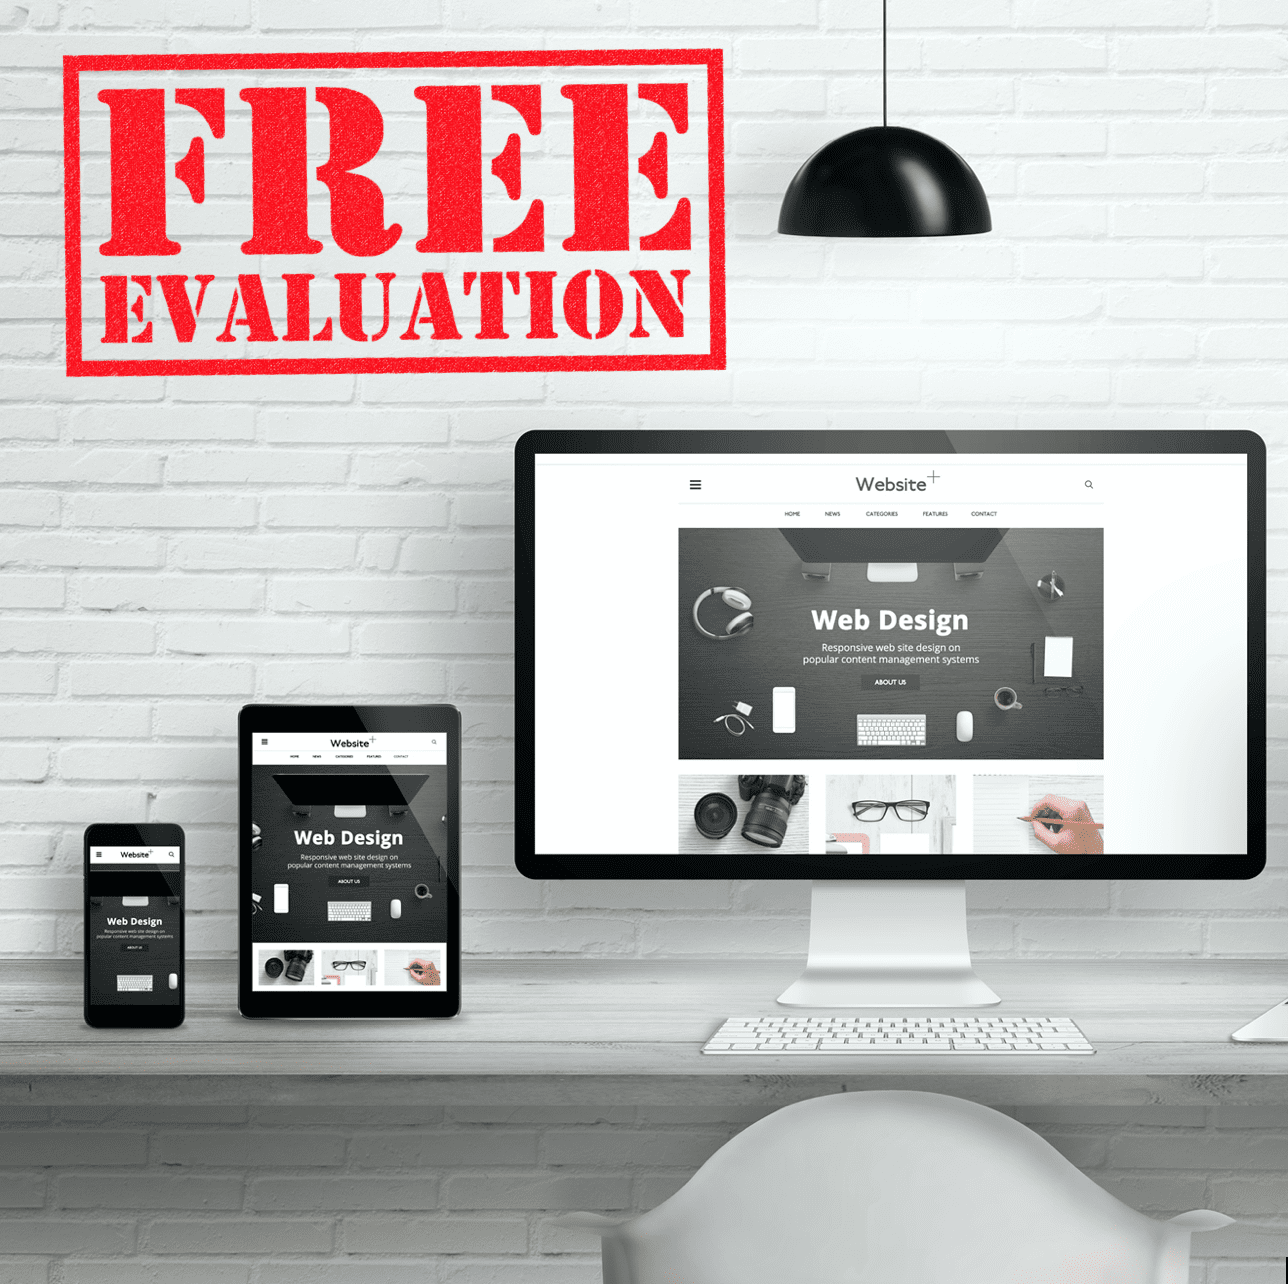 Ask the Egghead Free Website Evaluation